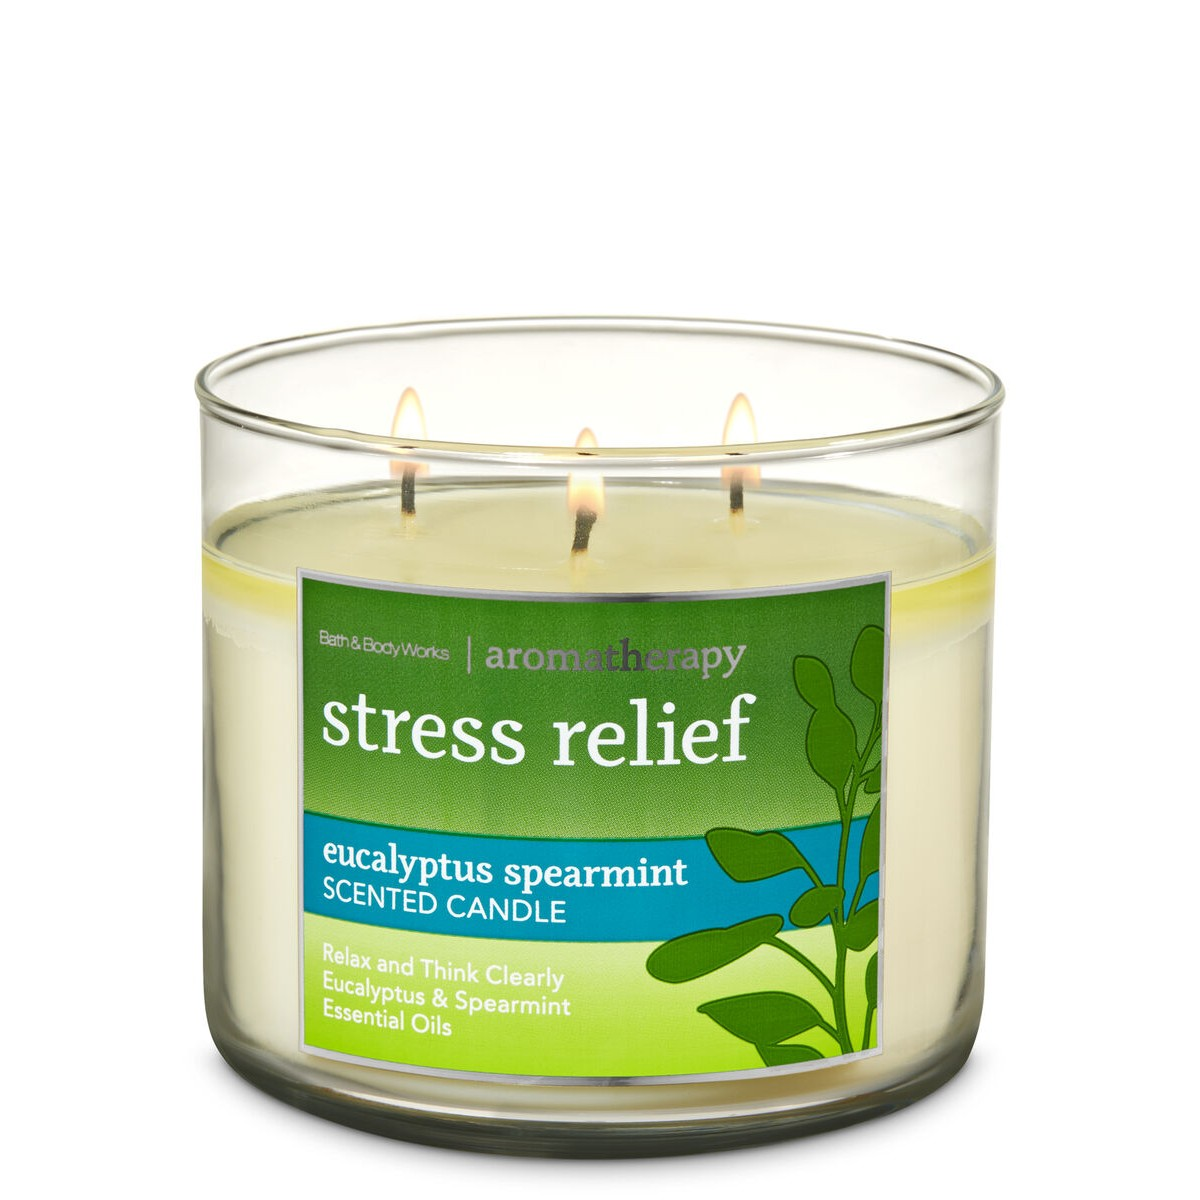 It's just a picture of Trust Yankee Candle Printable Coupons 2020